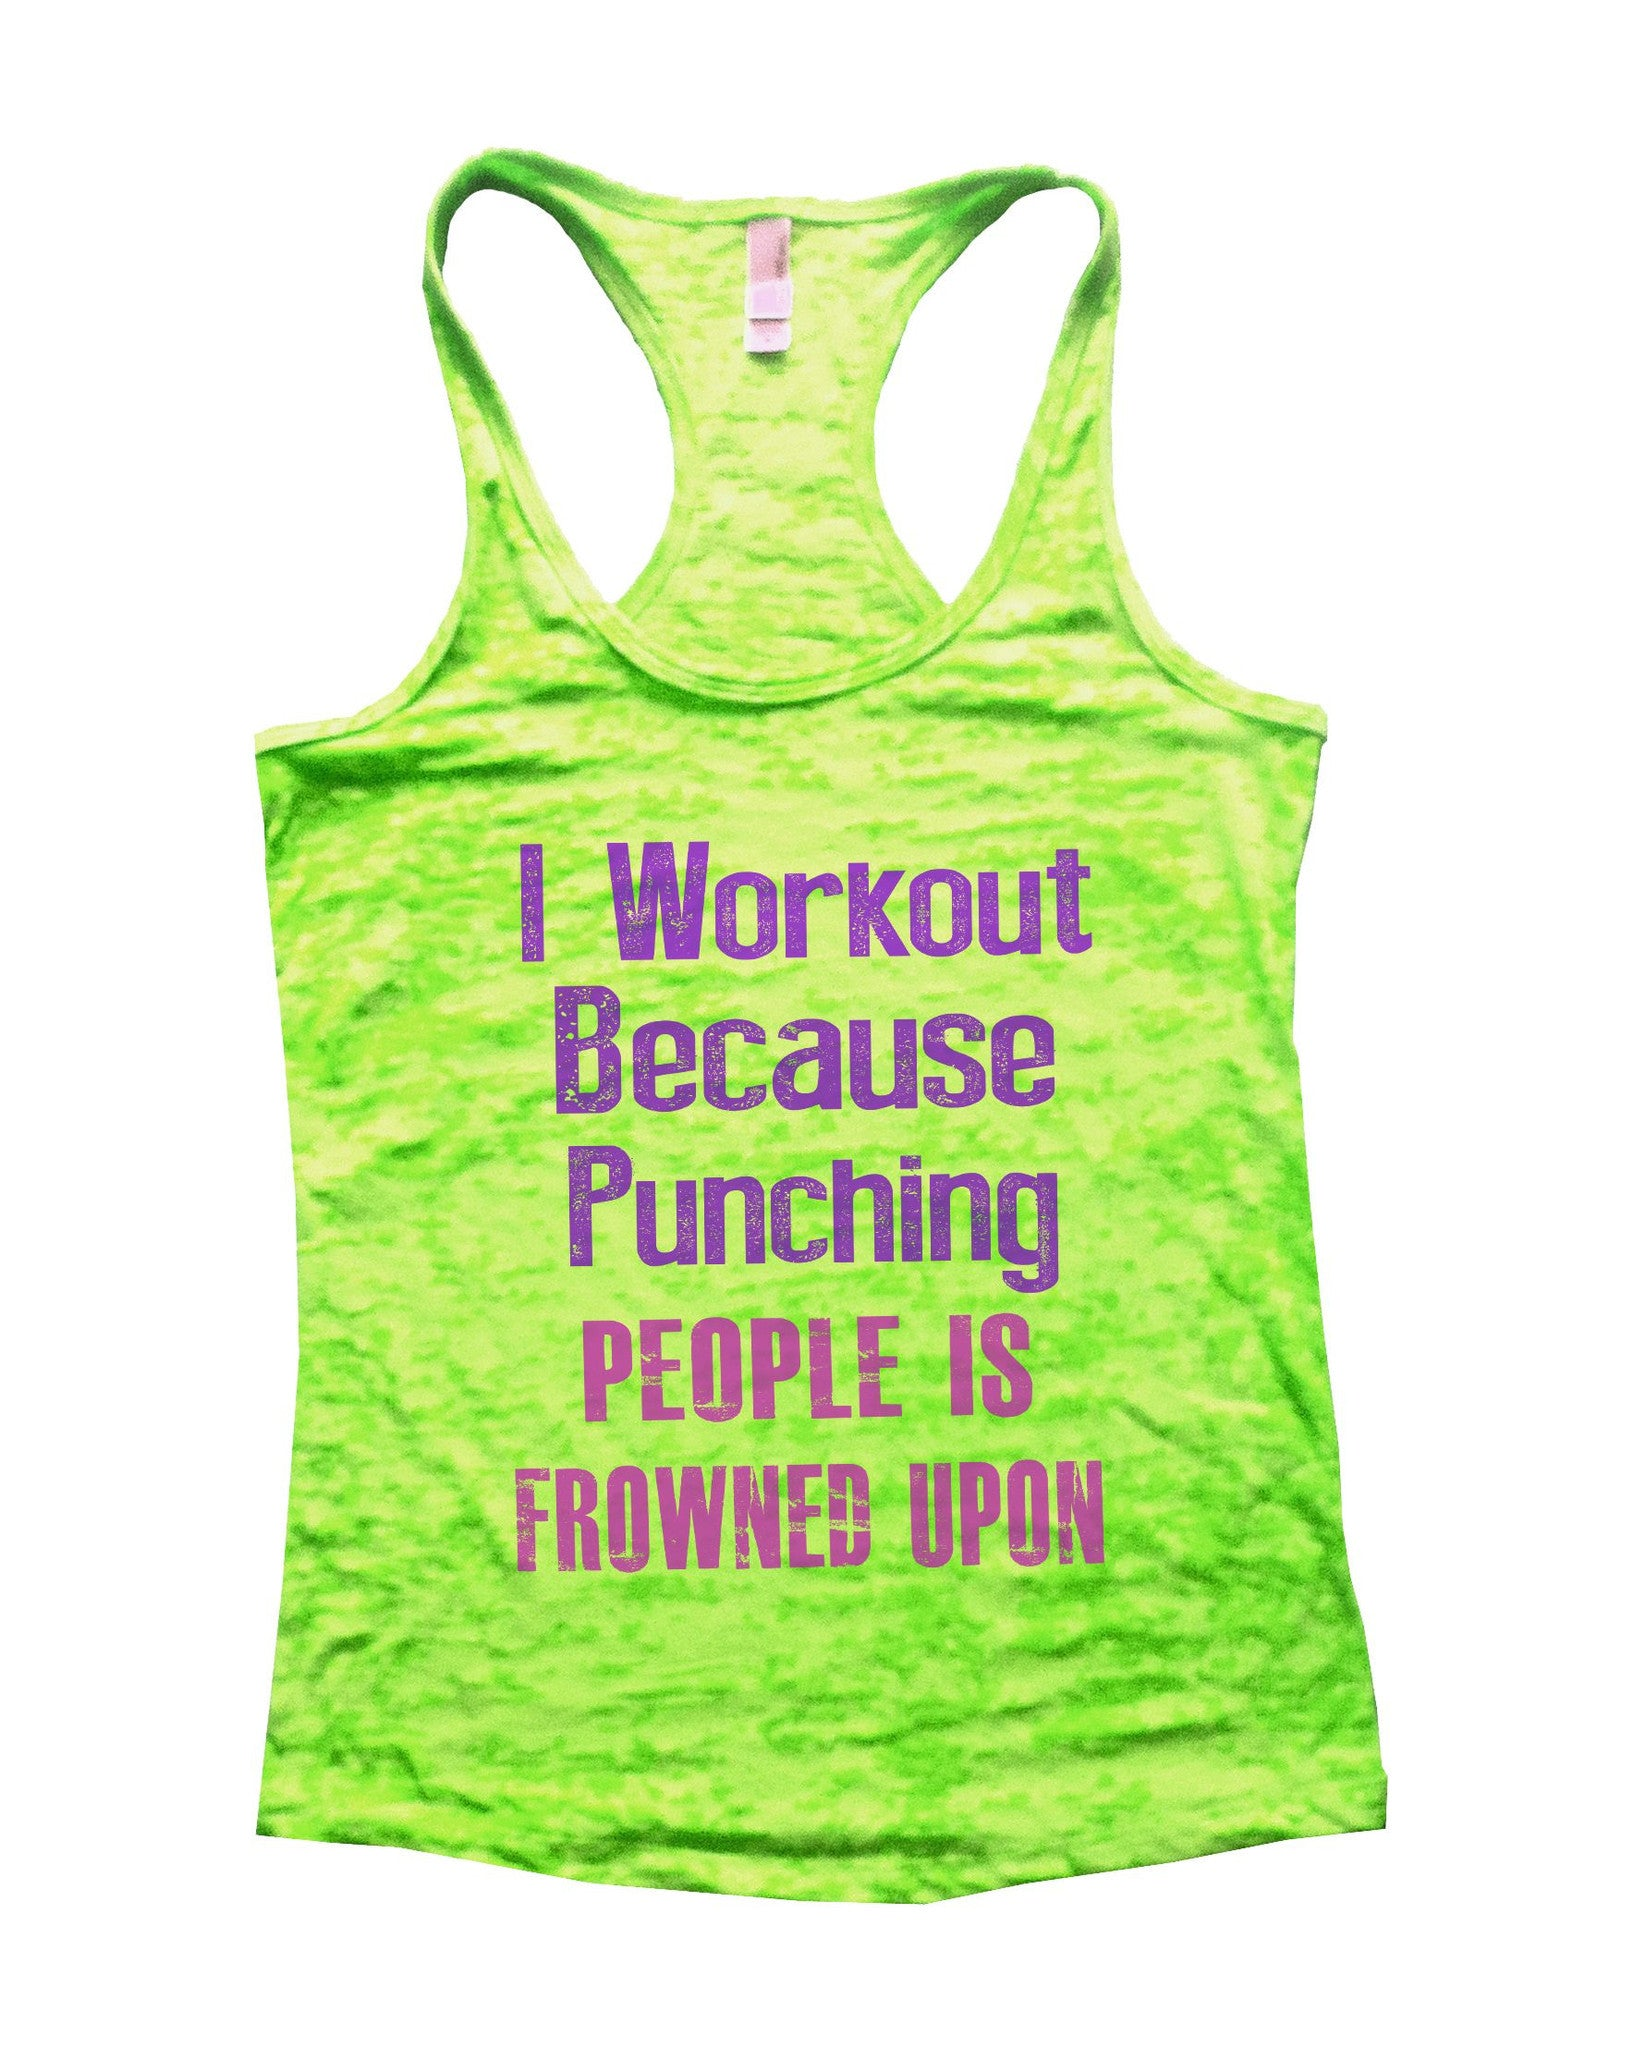 I Workout Because Punching People Is Frowned Upon Burnout Tank Top By BurnoutTankTops.com - 681 - Funny Shirts Tank Tops Burnouts and Triblends  - 3